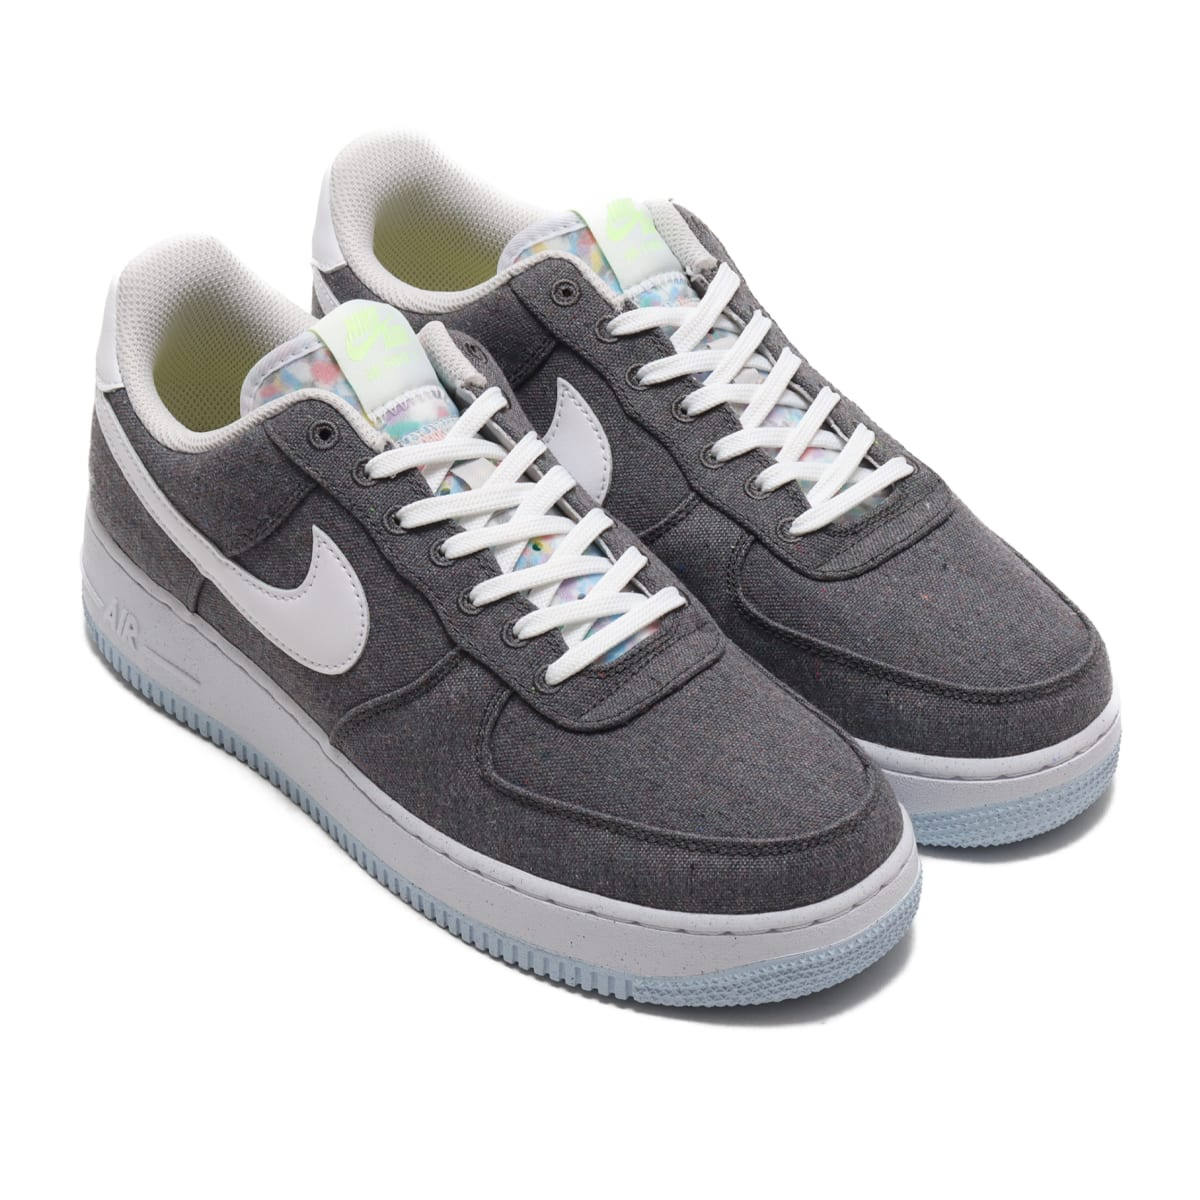 NIKE AIR FORCE 1 '07 IRON GREY/WHITE-BARELY VOLT 20FA-I_photo_large